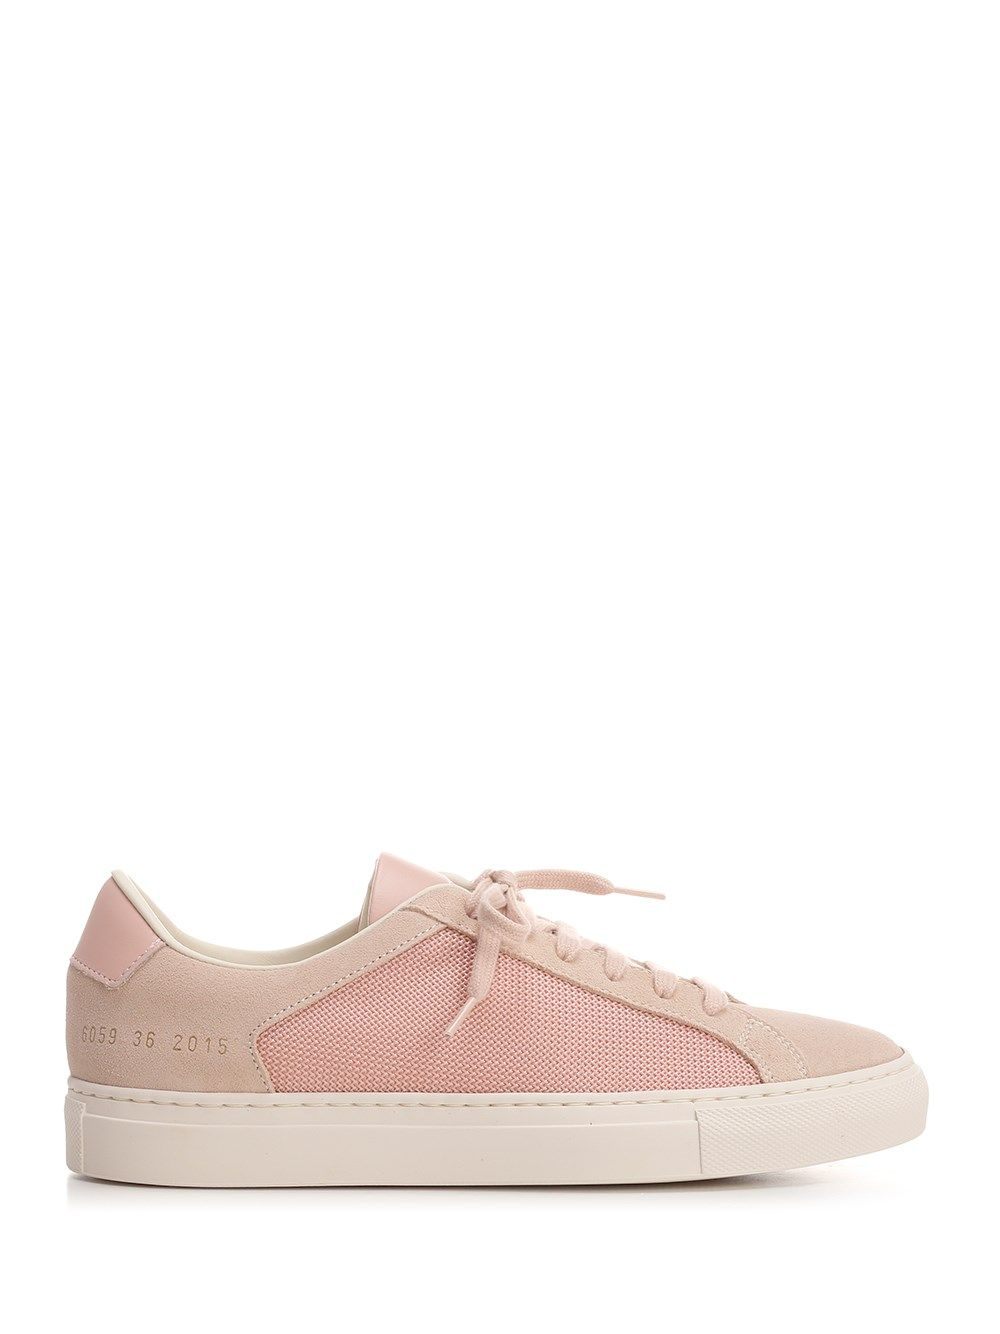 Common Projects COMMON PROJECTS WOMEN'S 60592015 PINK OTHER MATERIALS SNEAKERS